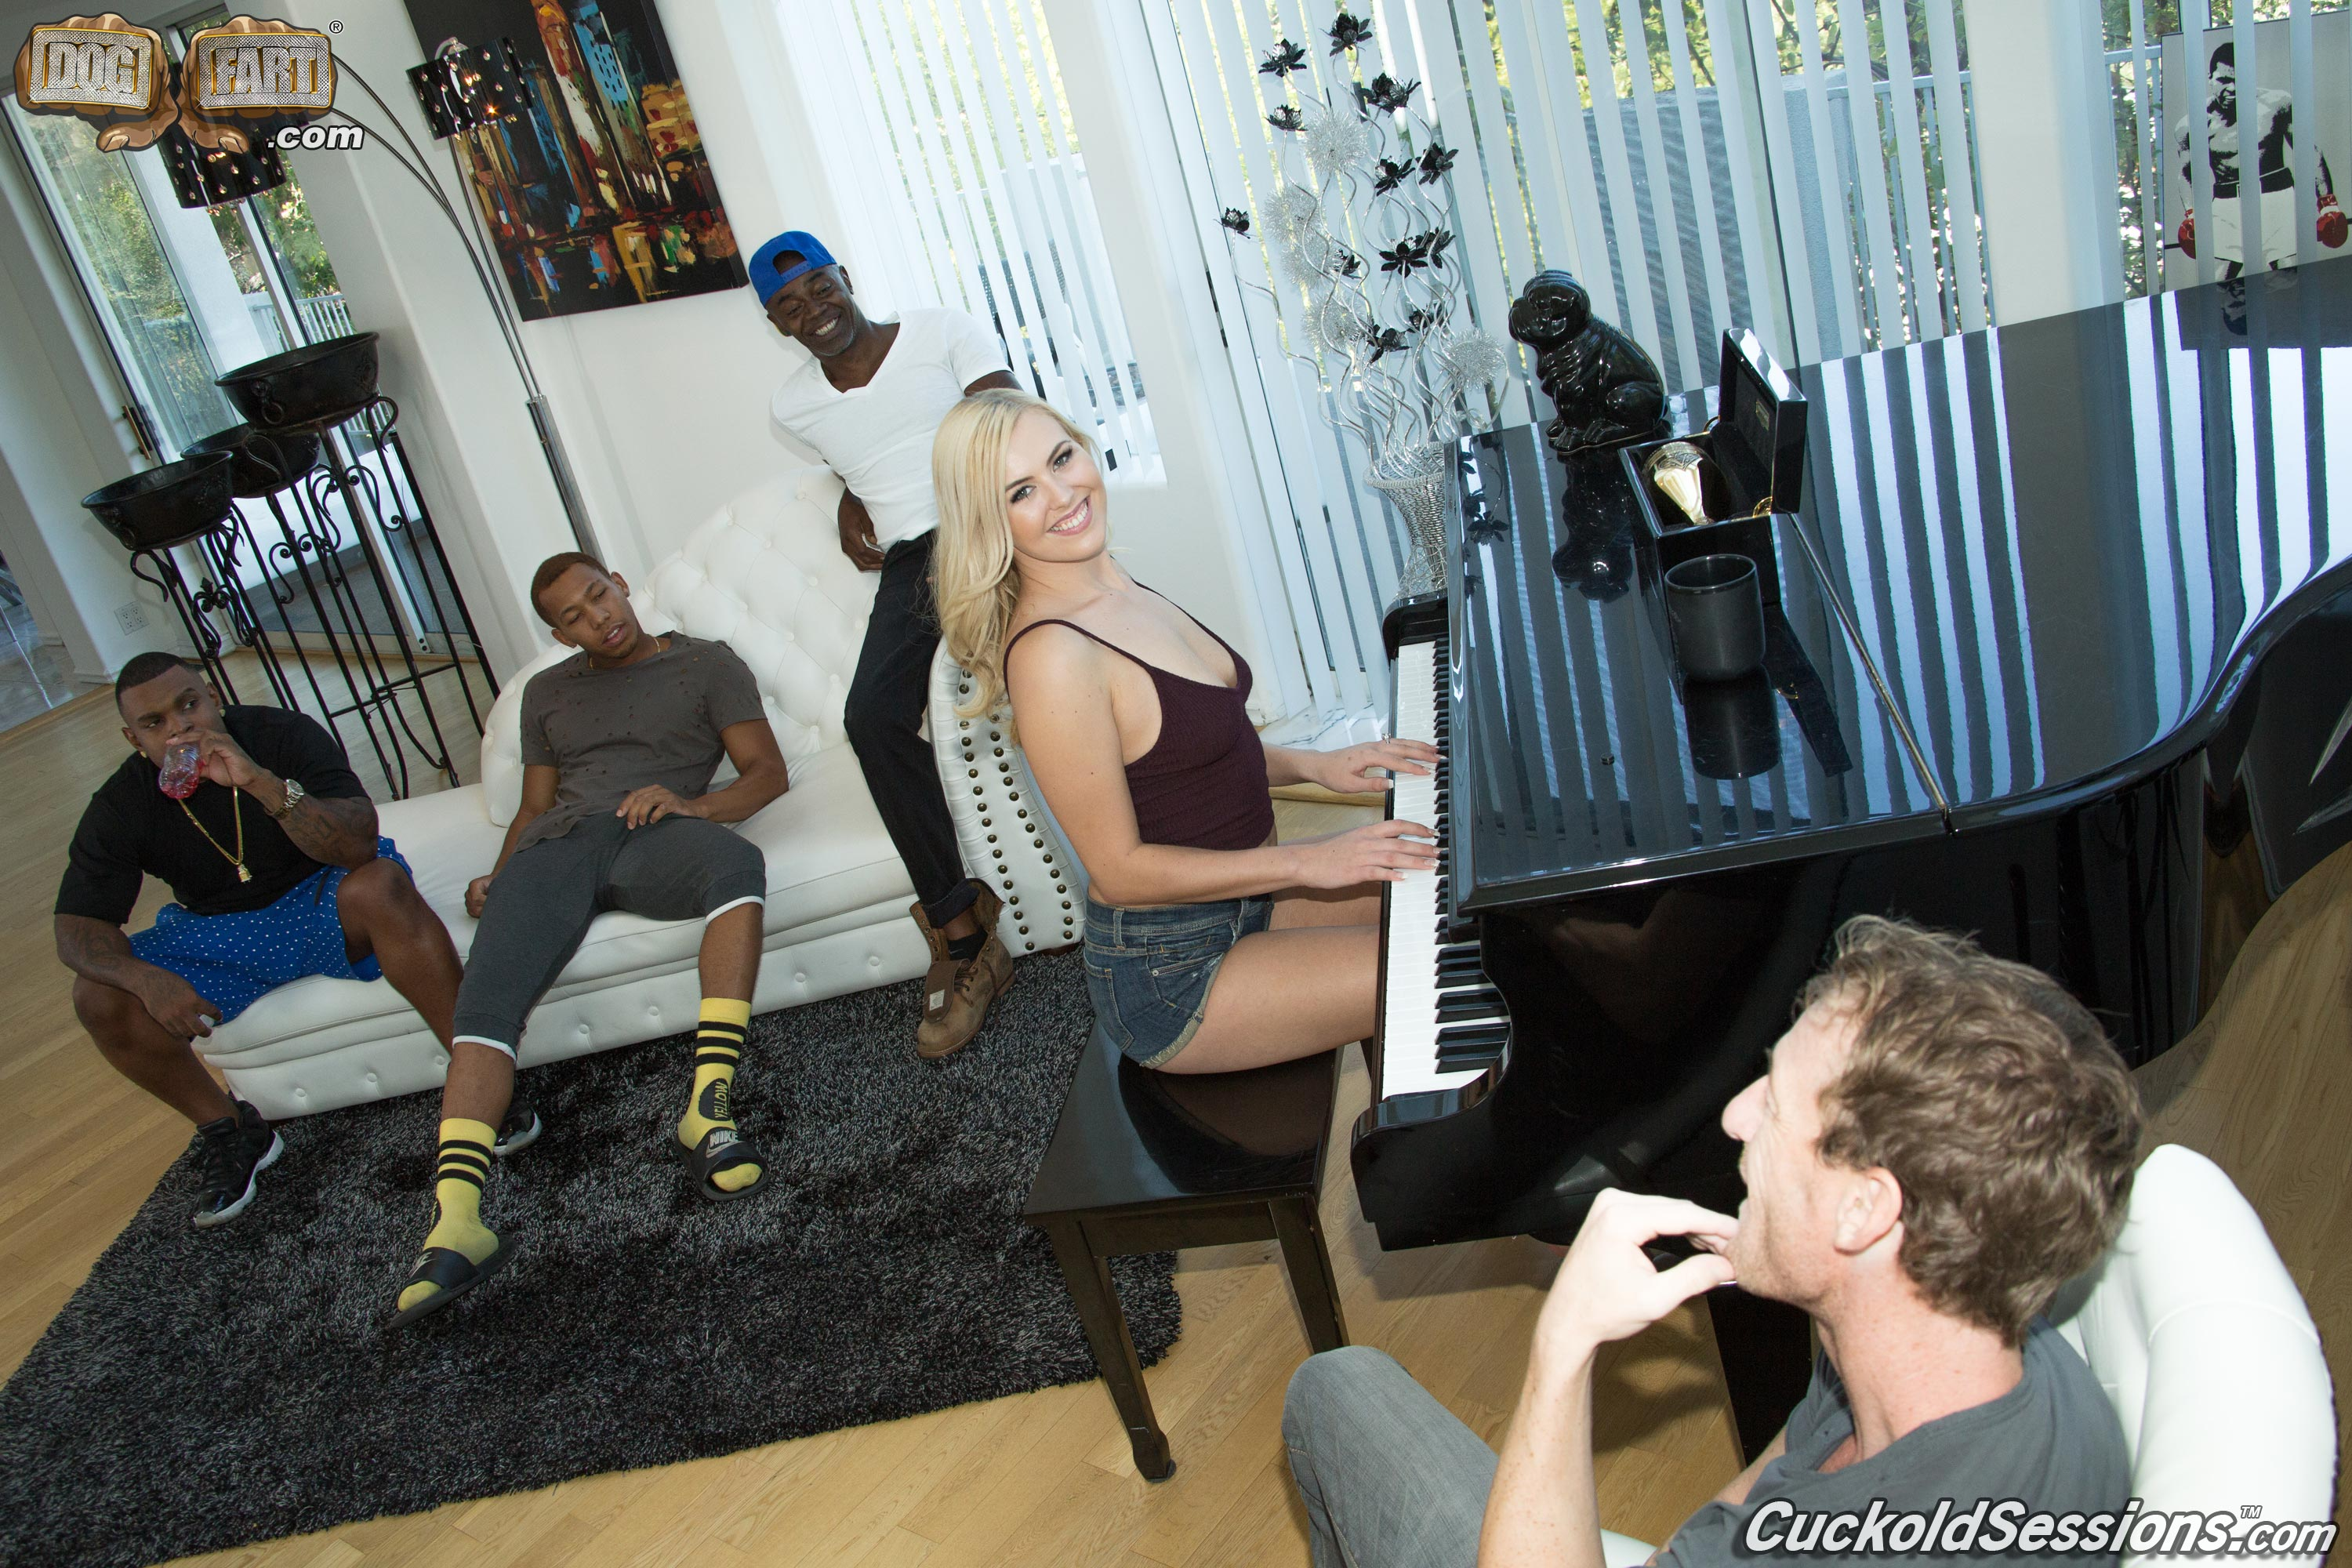 Summer Day DogFart Cuckold Sessions